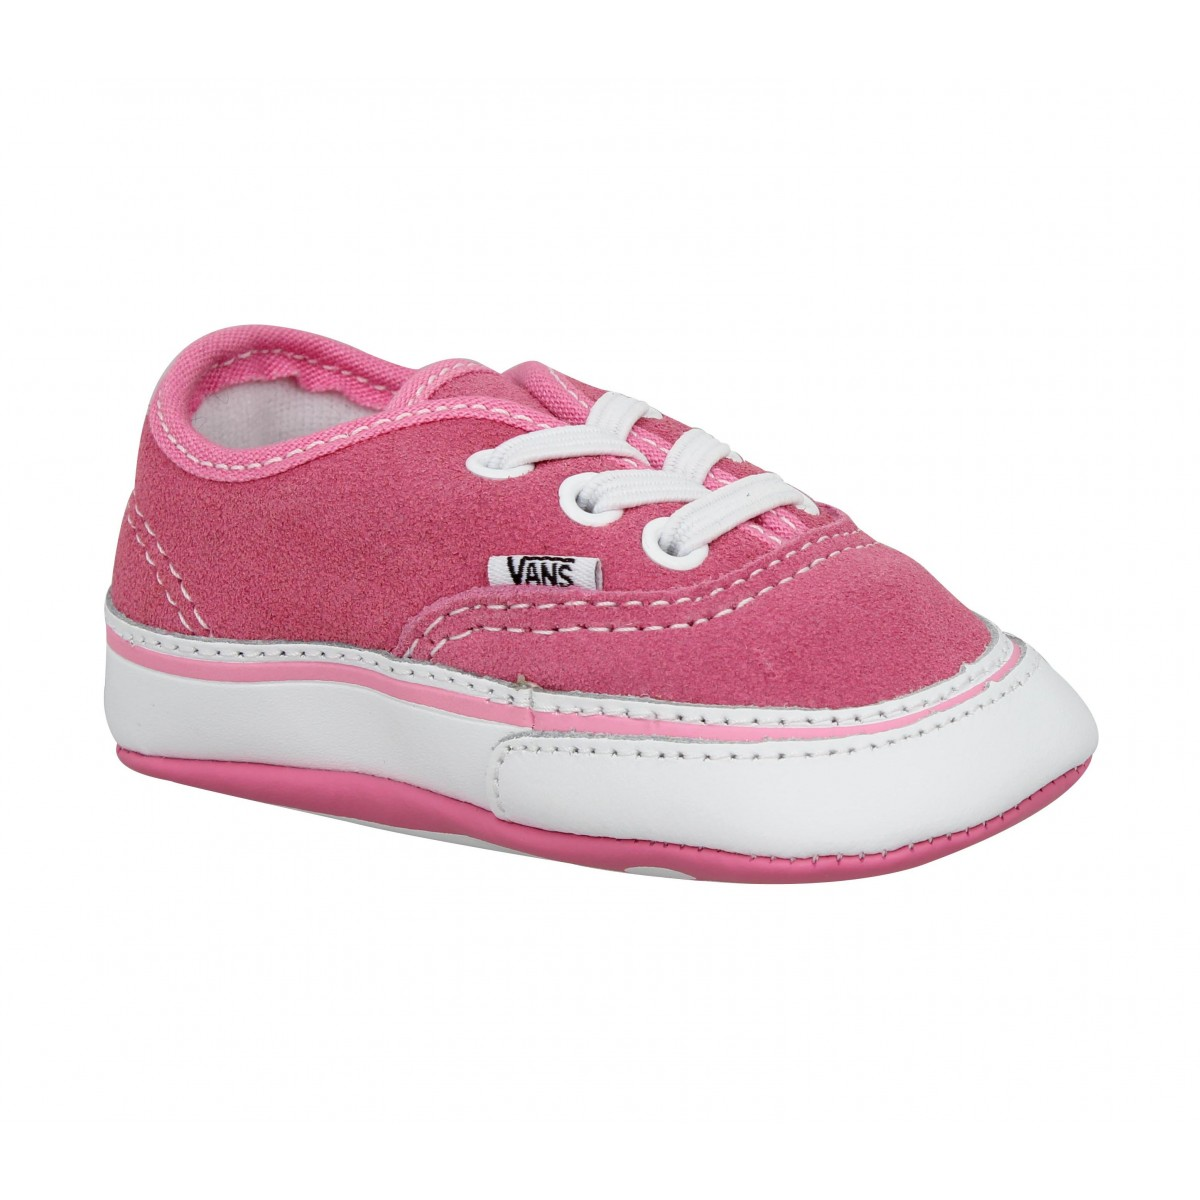 Baskets VANS Authentic Bébé velours Enfant Rose